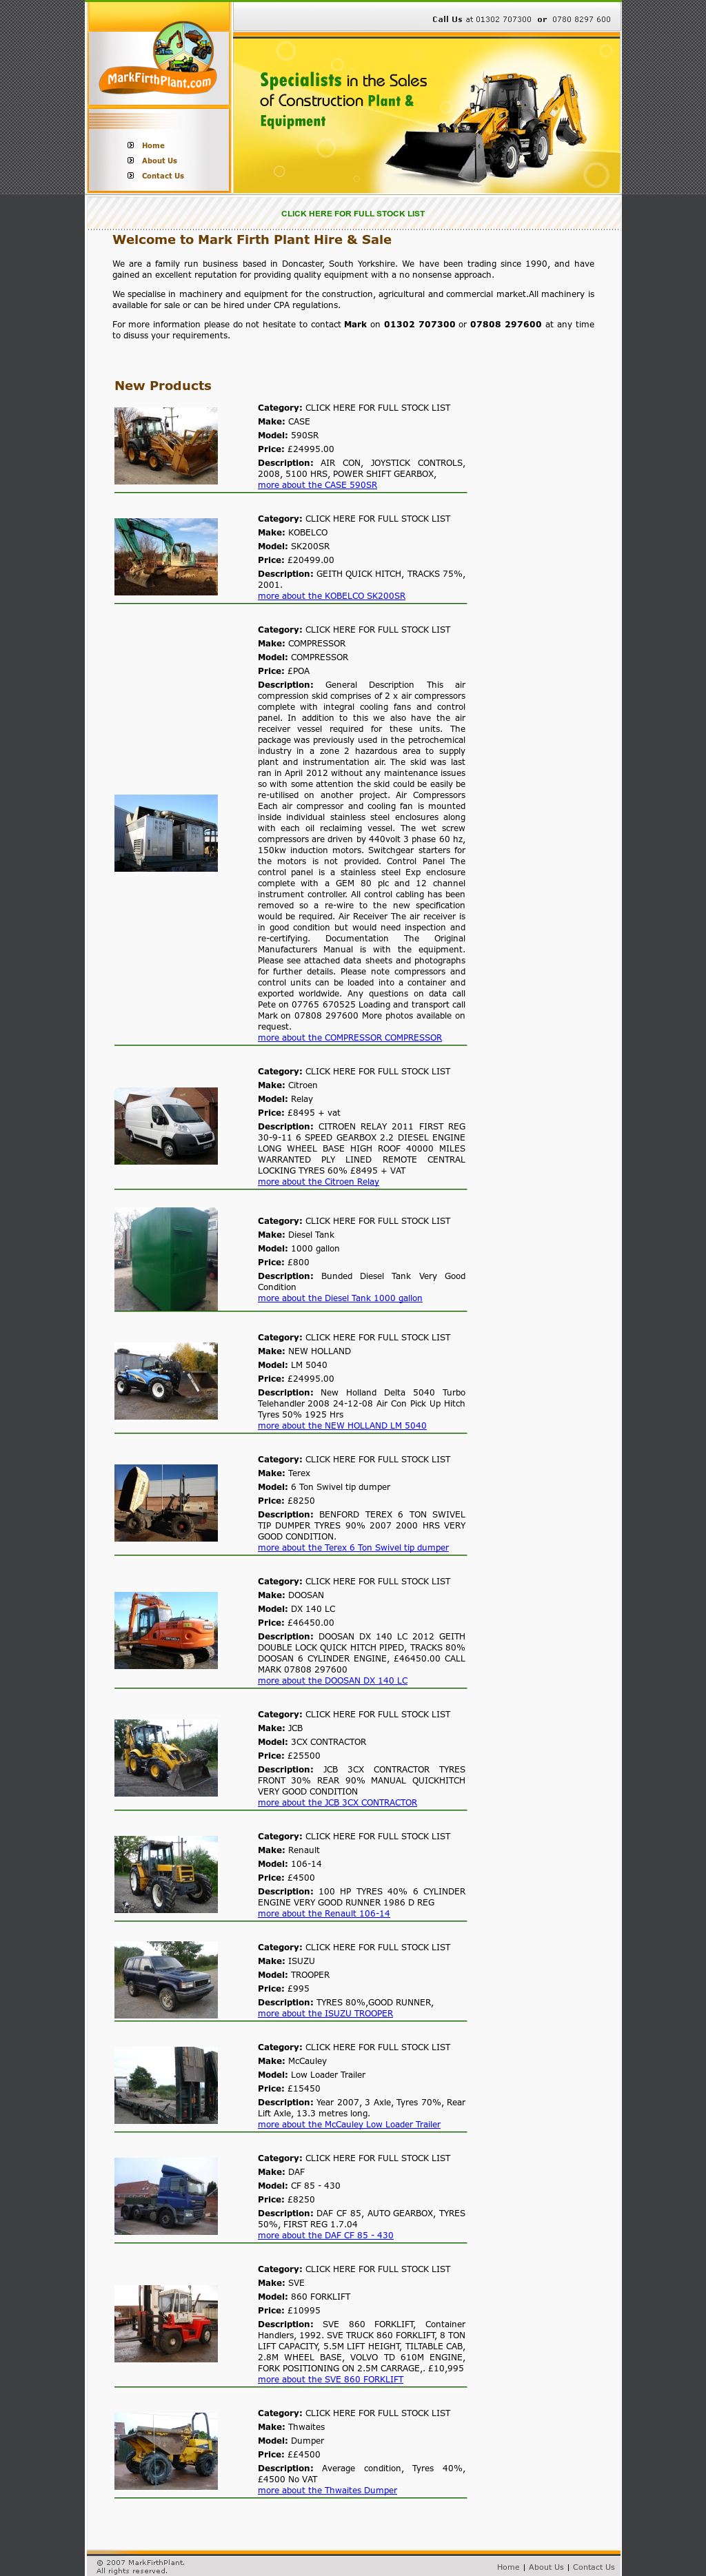 Mark Firth Plant Hire And Sales Competitors, Revenue and